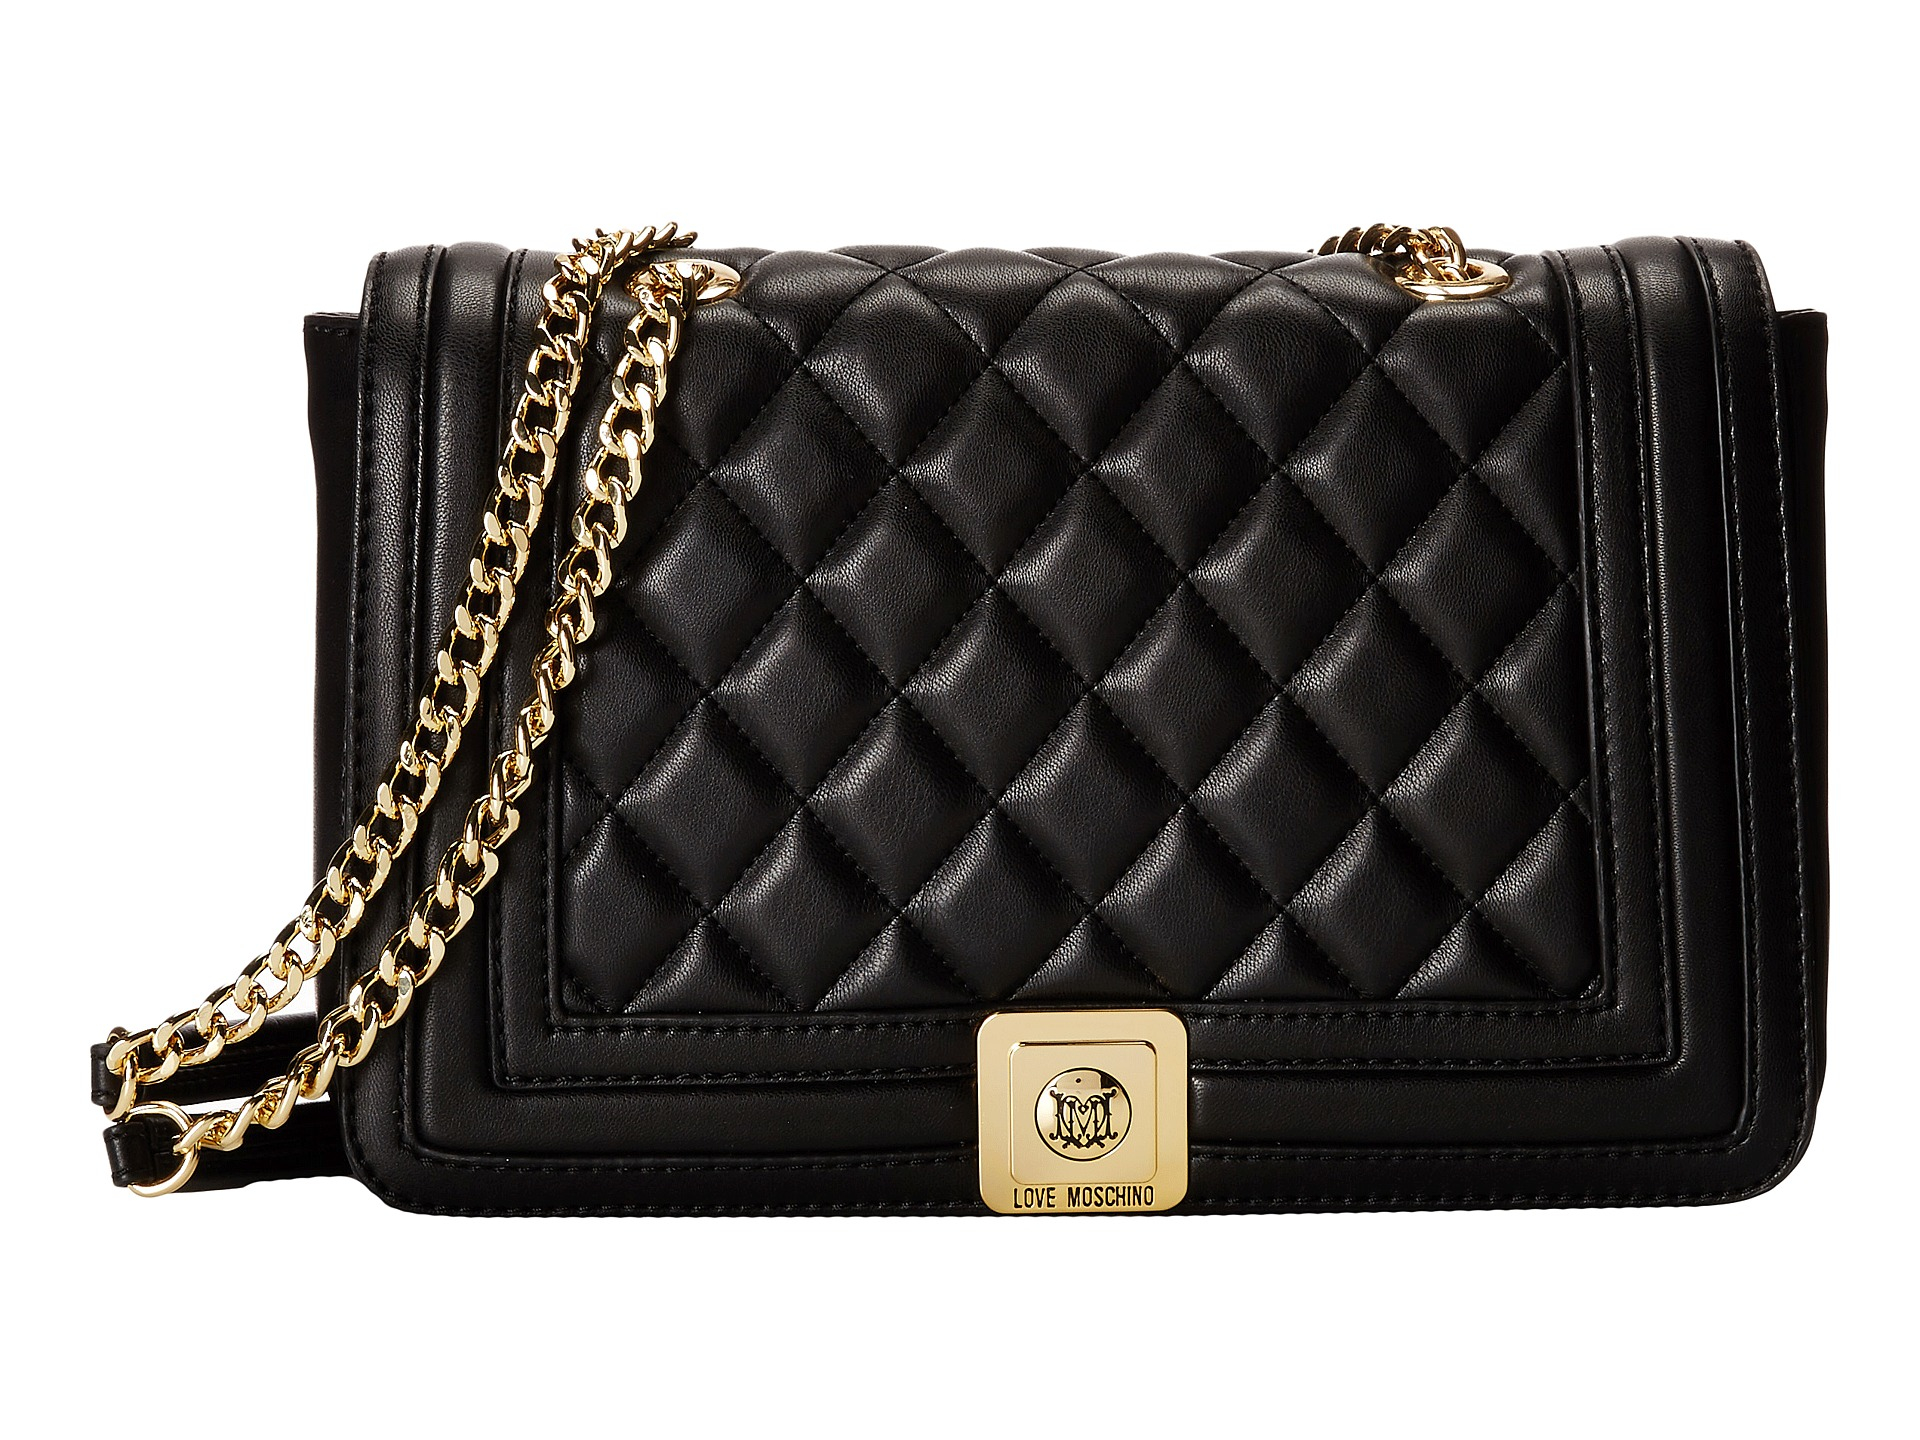 lyst love moschino quilted flap vers crossbody bag in black. Black Bedroom Furniture Sets. Home Design Ideas